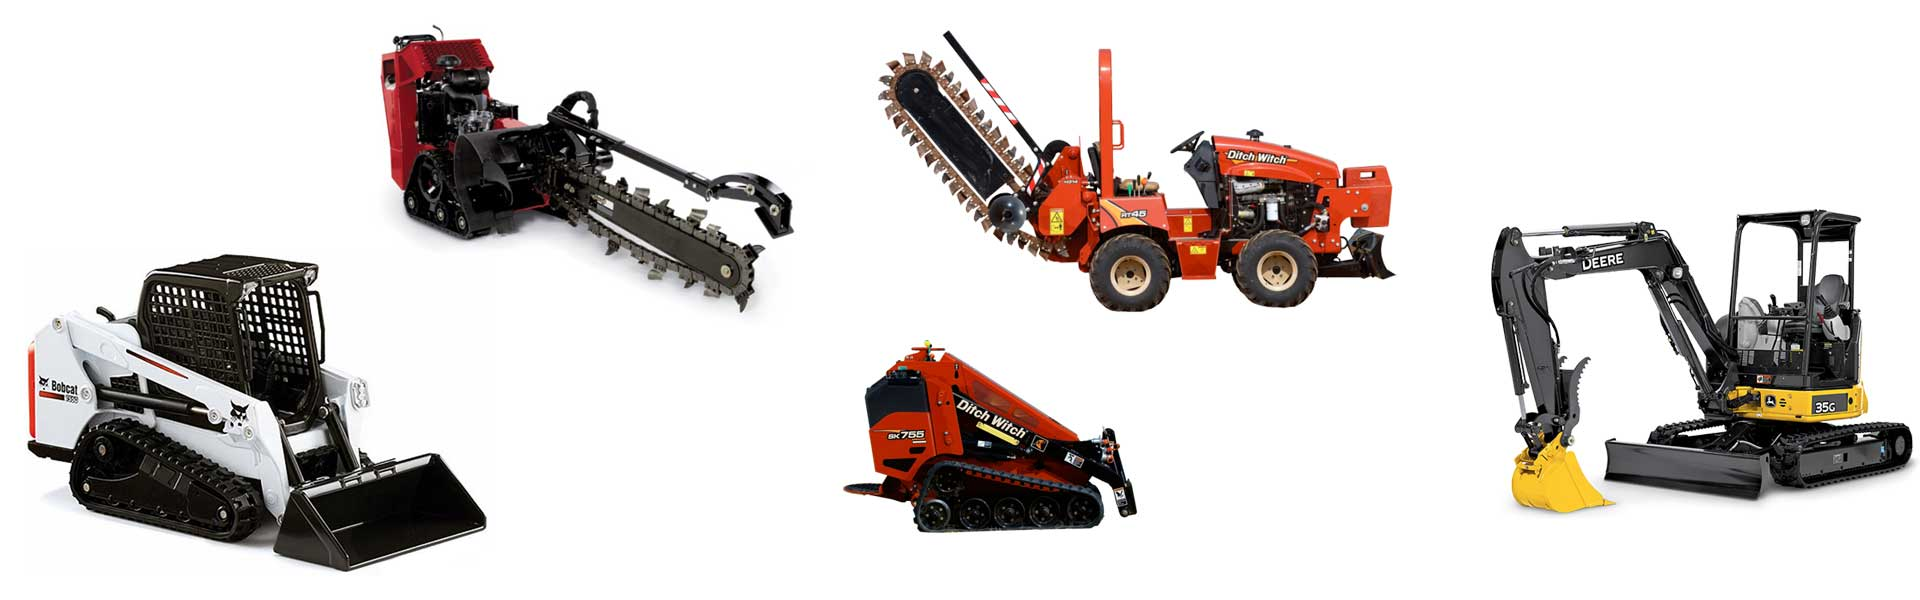 Equipment rentals in Eastern Kansas and Western Missouri